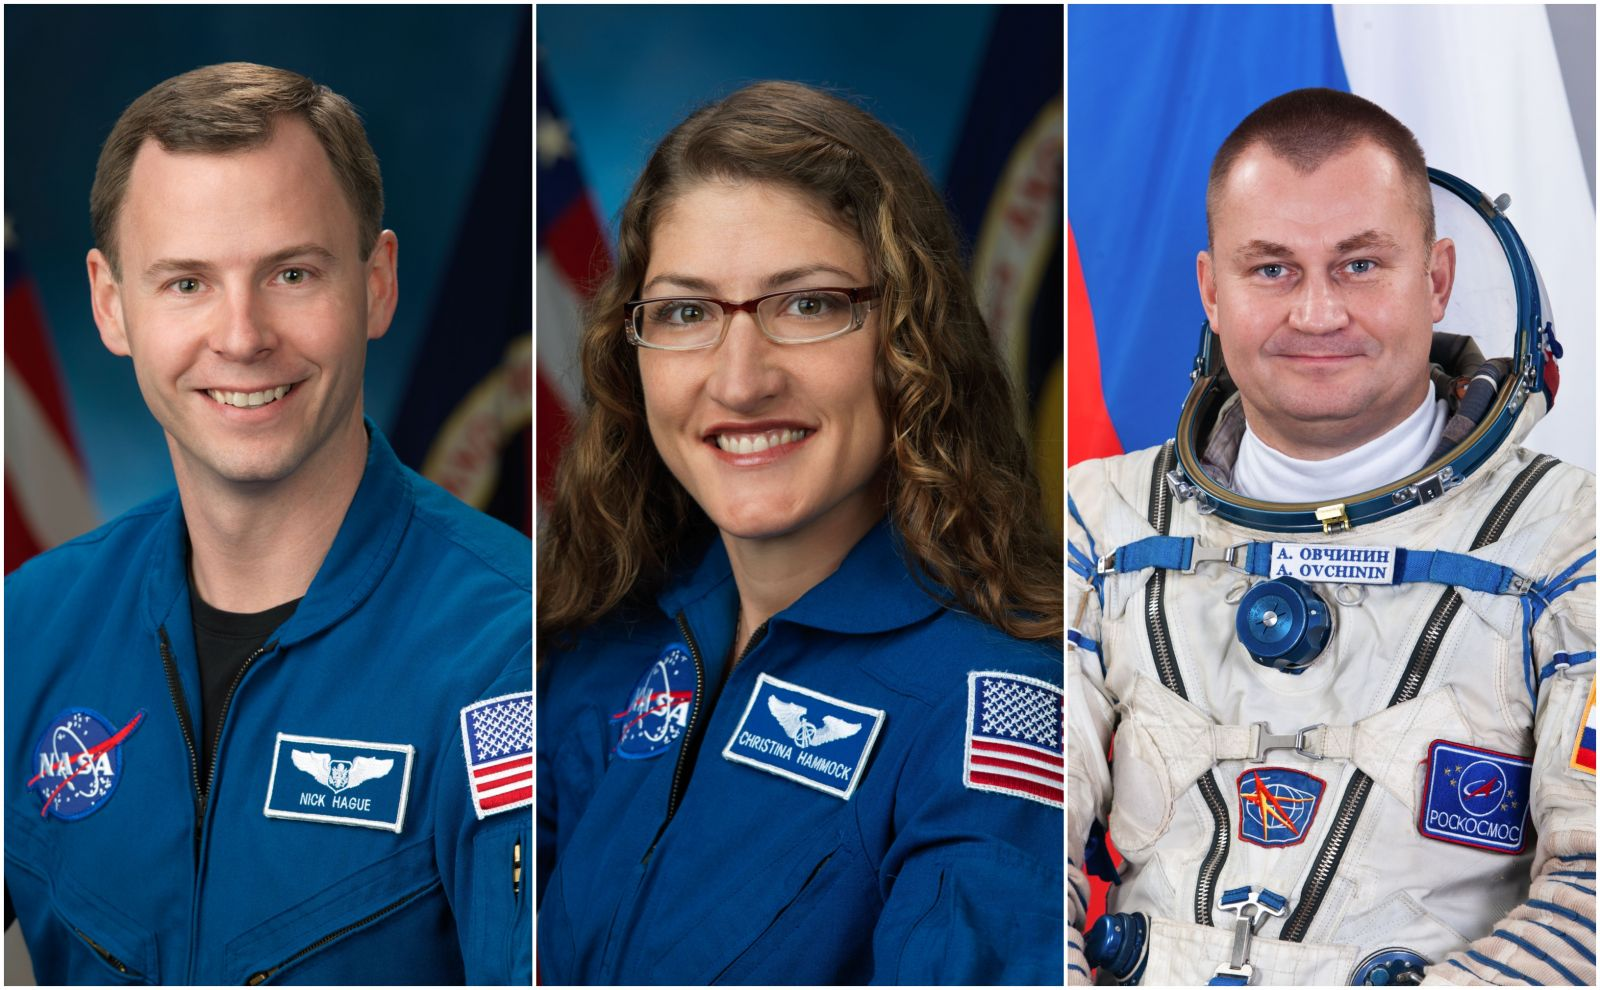 NASA astronaut Nick Hague, left, and Russian cosmonaut Aleksey Ovchinin, right, will fly to space again after their aborted Soyuz MS-10 mission in October 2018. The will join NASA astronaut Christina Koch as part of the crew of Soyuz MS-12 in late February 2018. Photo Credit: NASA